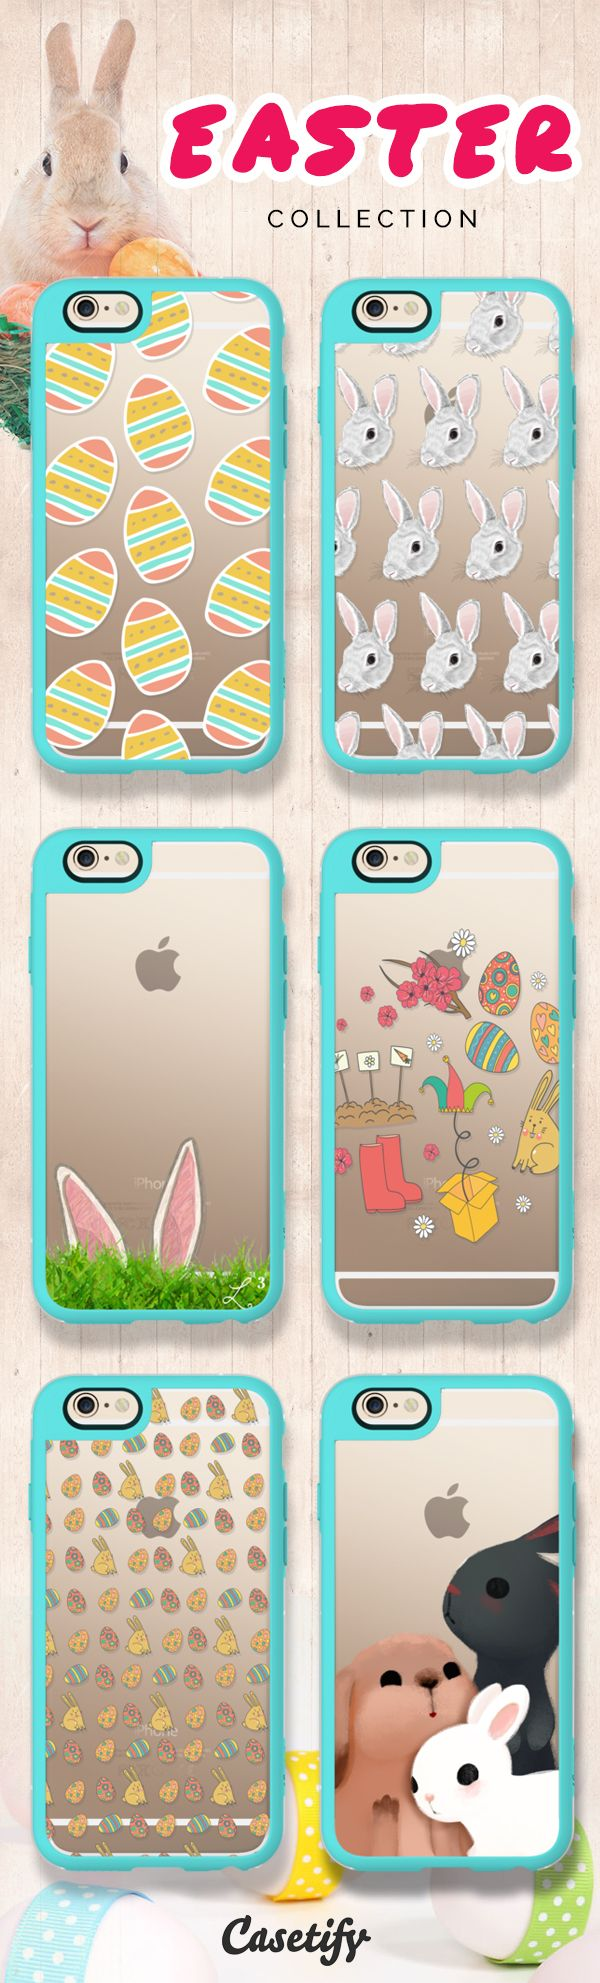 Hip Hop Hooray Easters On Its Way! Shop these adorable Easter designs on our site now! https://www.casetify.com/search?keyword=easter | @casetify